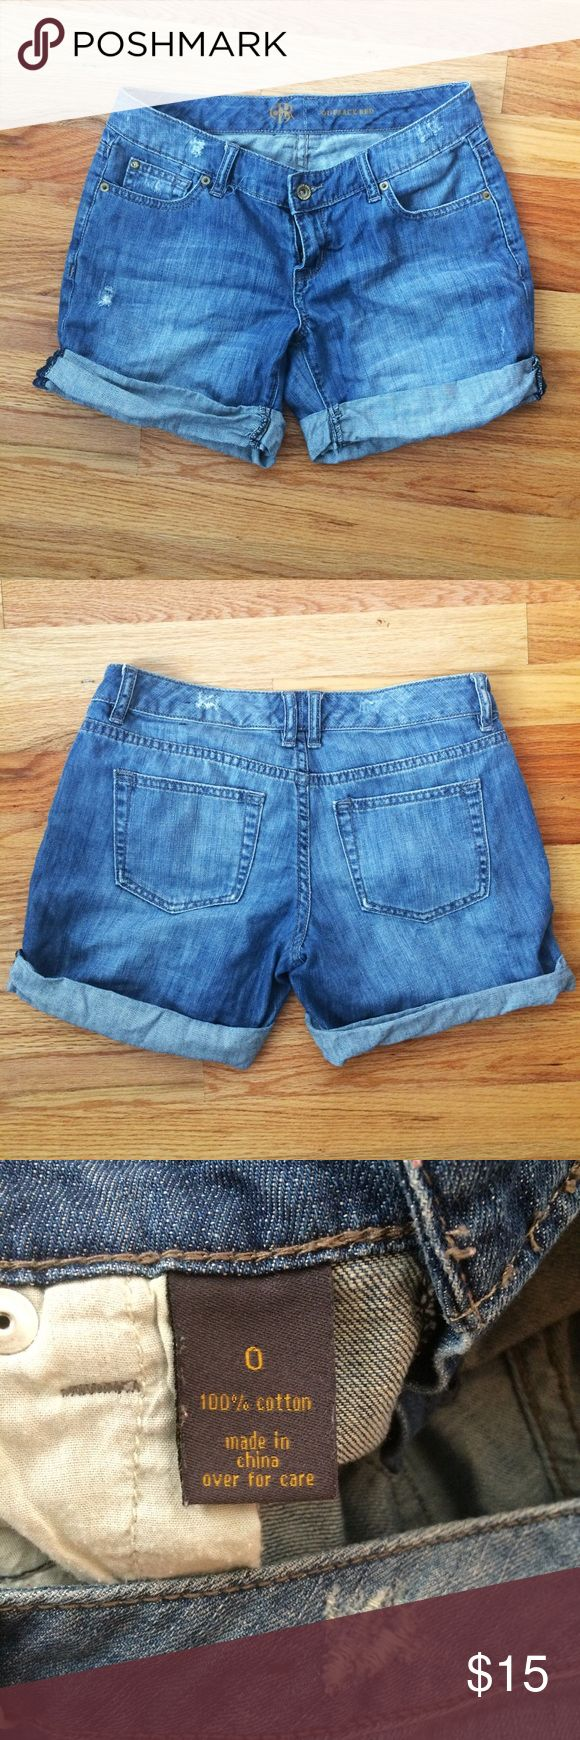 "🎀 $10 SALE 🎀 Outback Red | Denim Cuffed Shorts The perfect pair of denim shorts! Cuffed denim shorts in a medium wash with some manufactured ""wear"" (like the small fraying/tear parts). Size zero but runs a little big! Outback Red Shorts Jean Shorts"